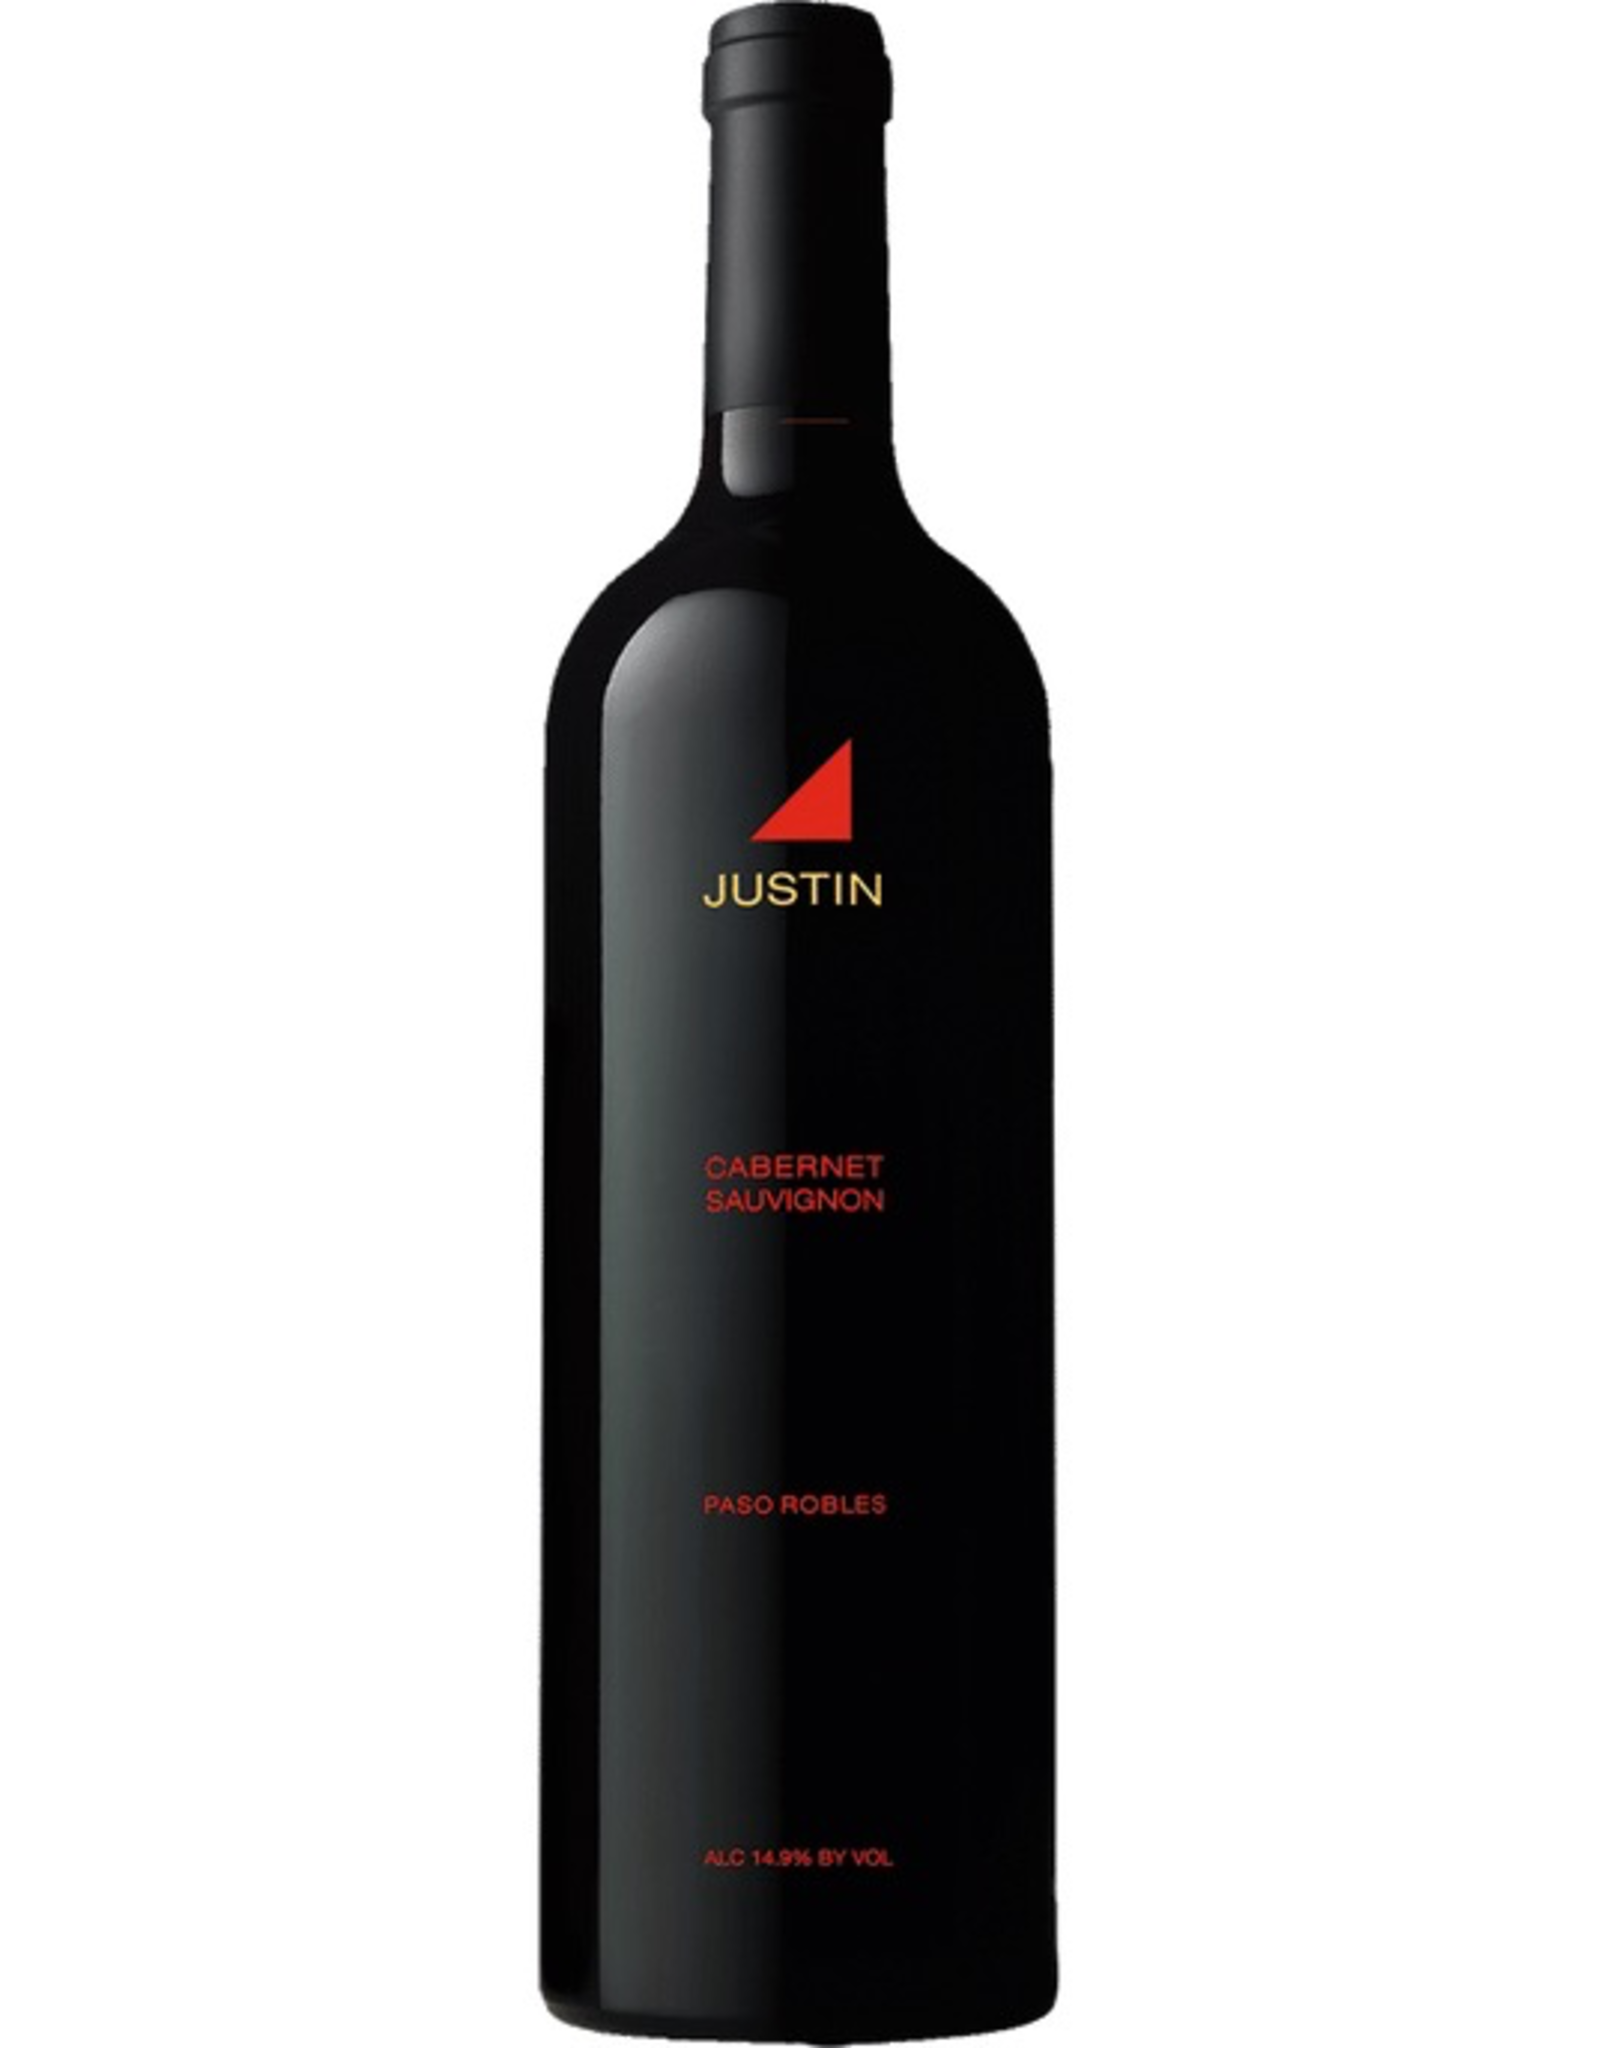 Red Wine 2018, Justin Vineyards, Cabernet Sauvignon, Paso Robles, Central Coast, California, 14.5% Alc, CT 88.2